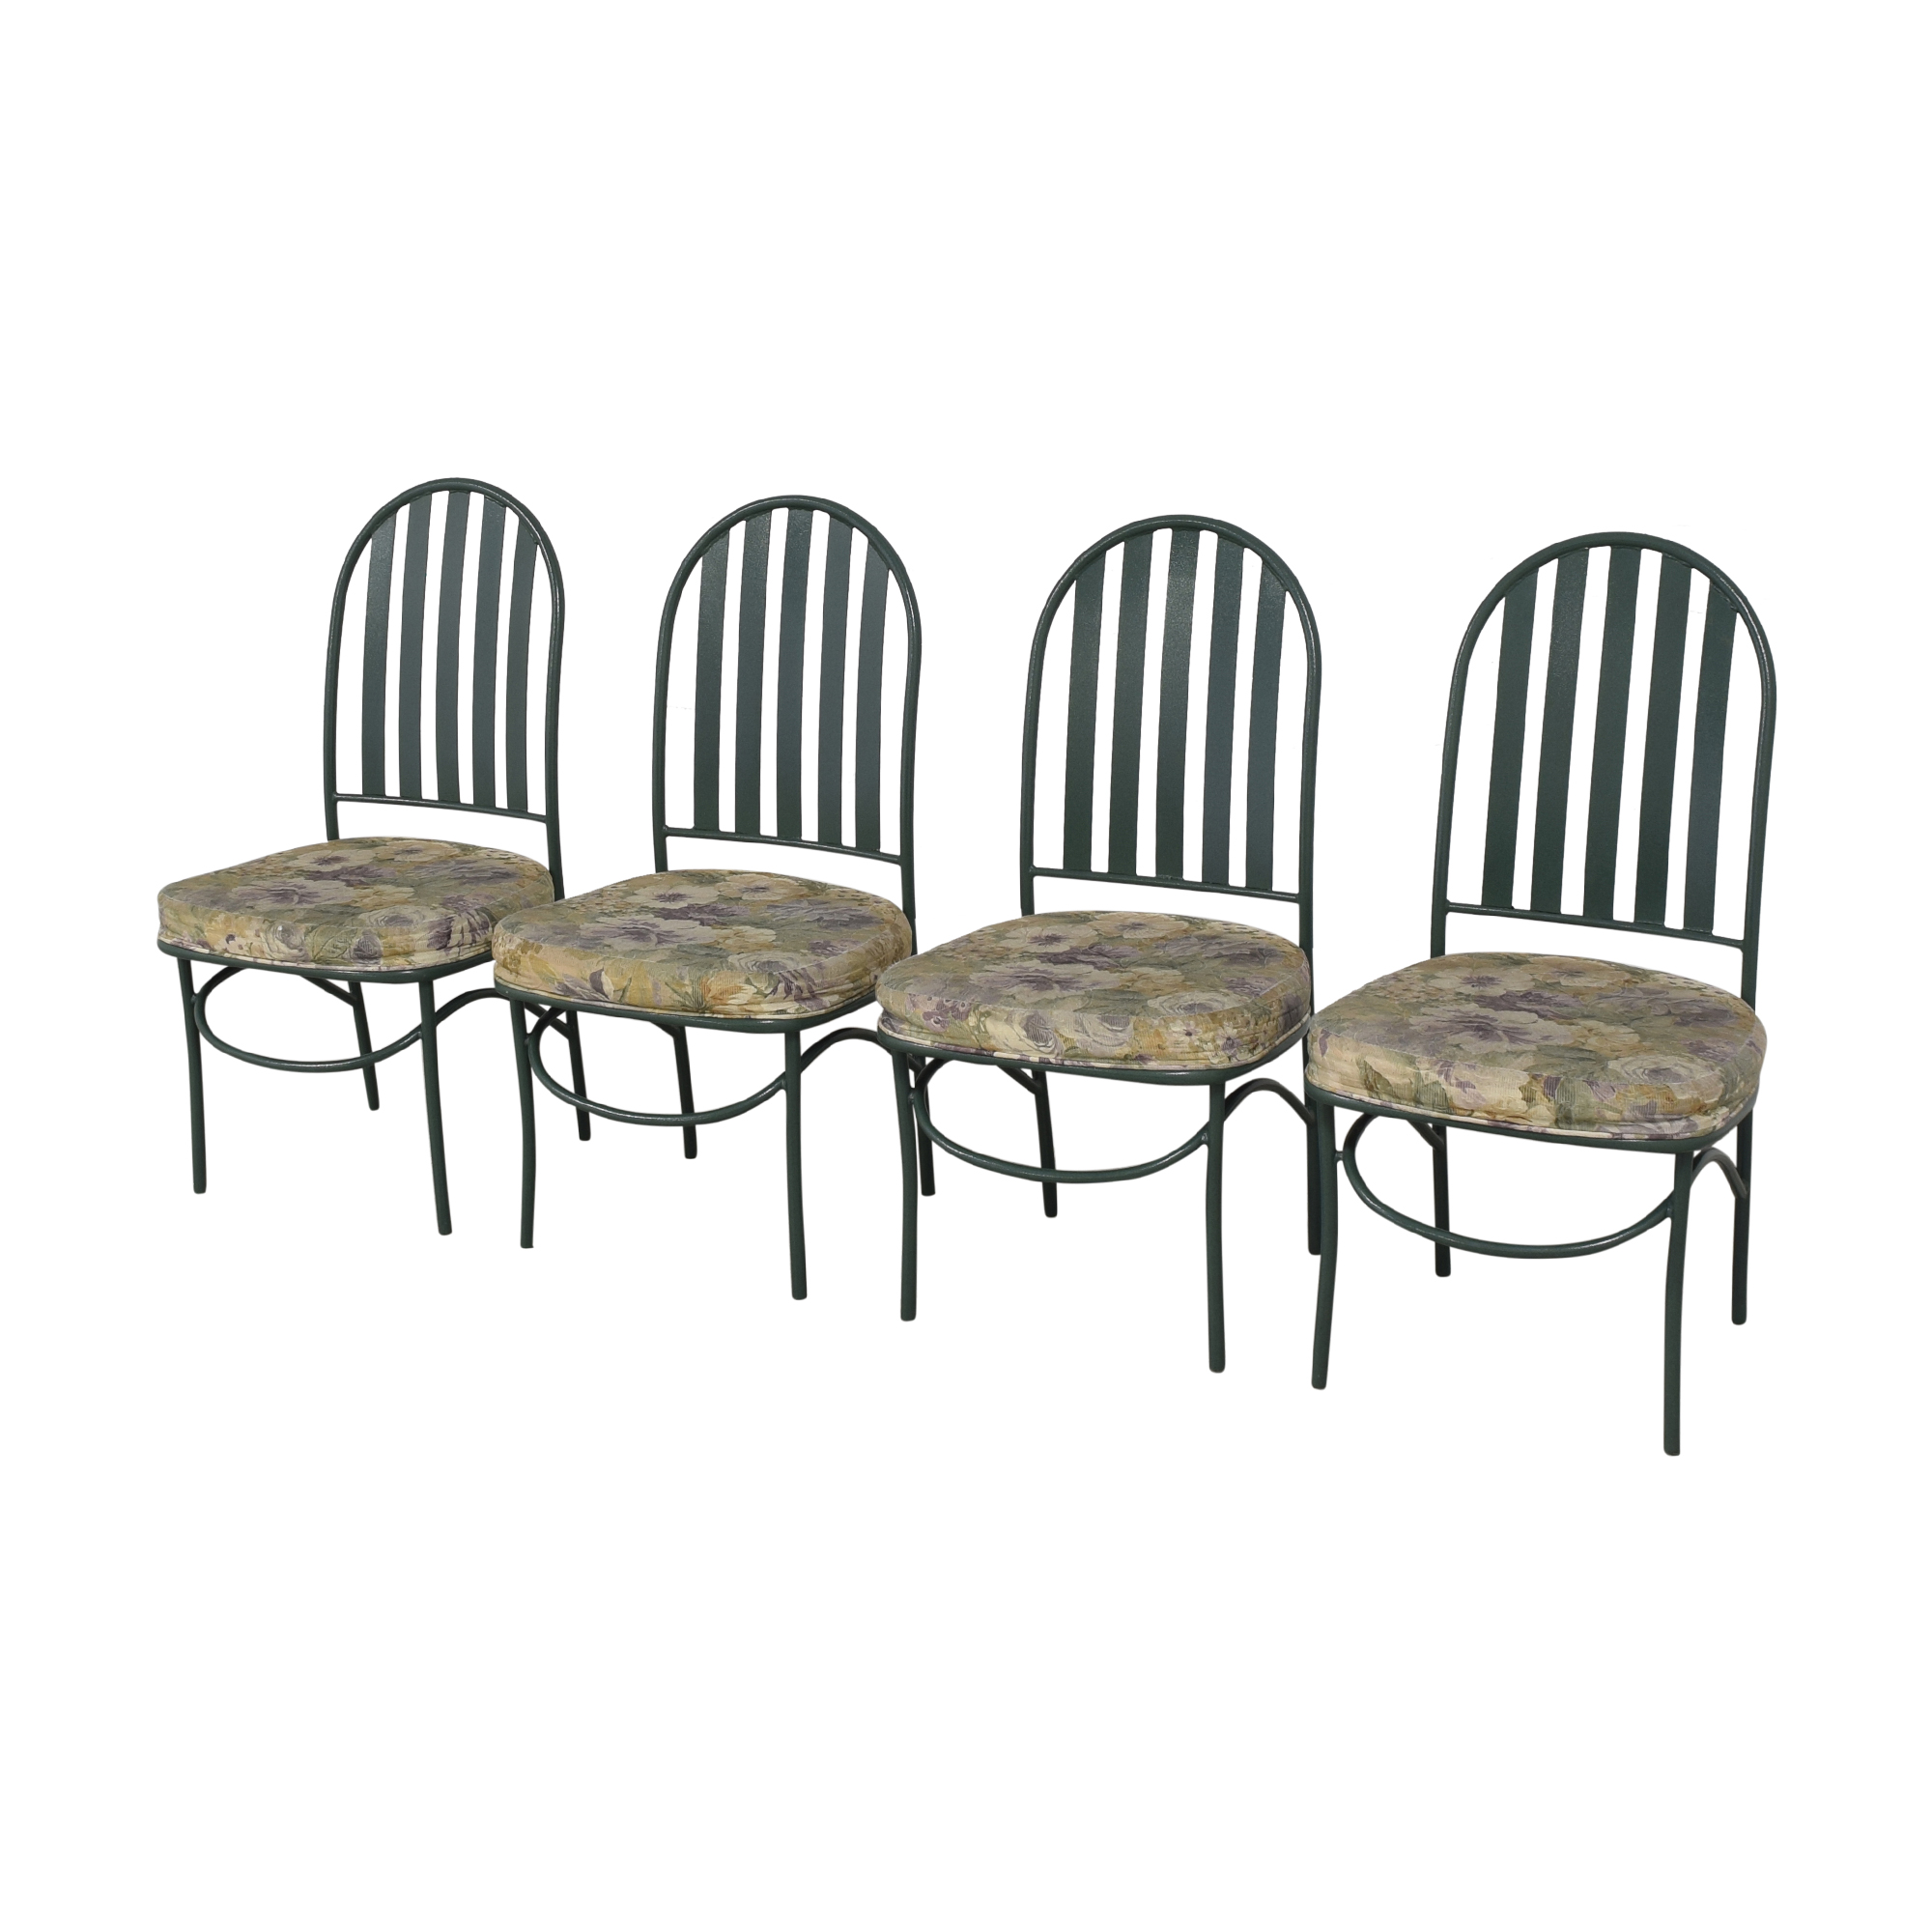 Floral Dining Chairs on sale